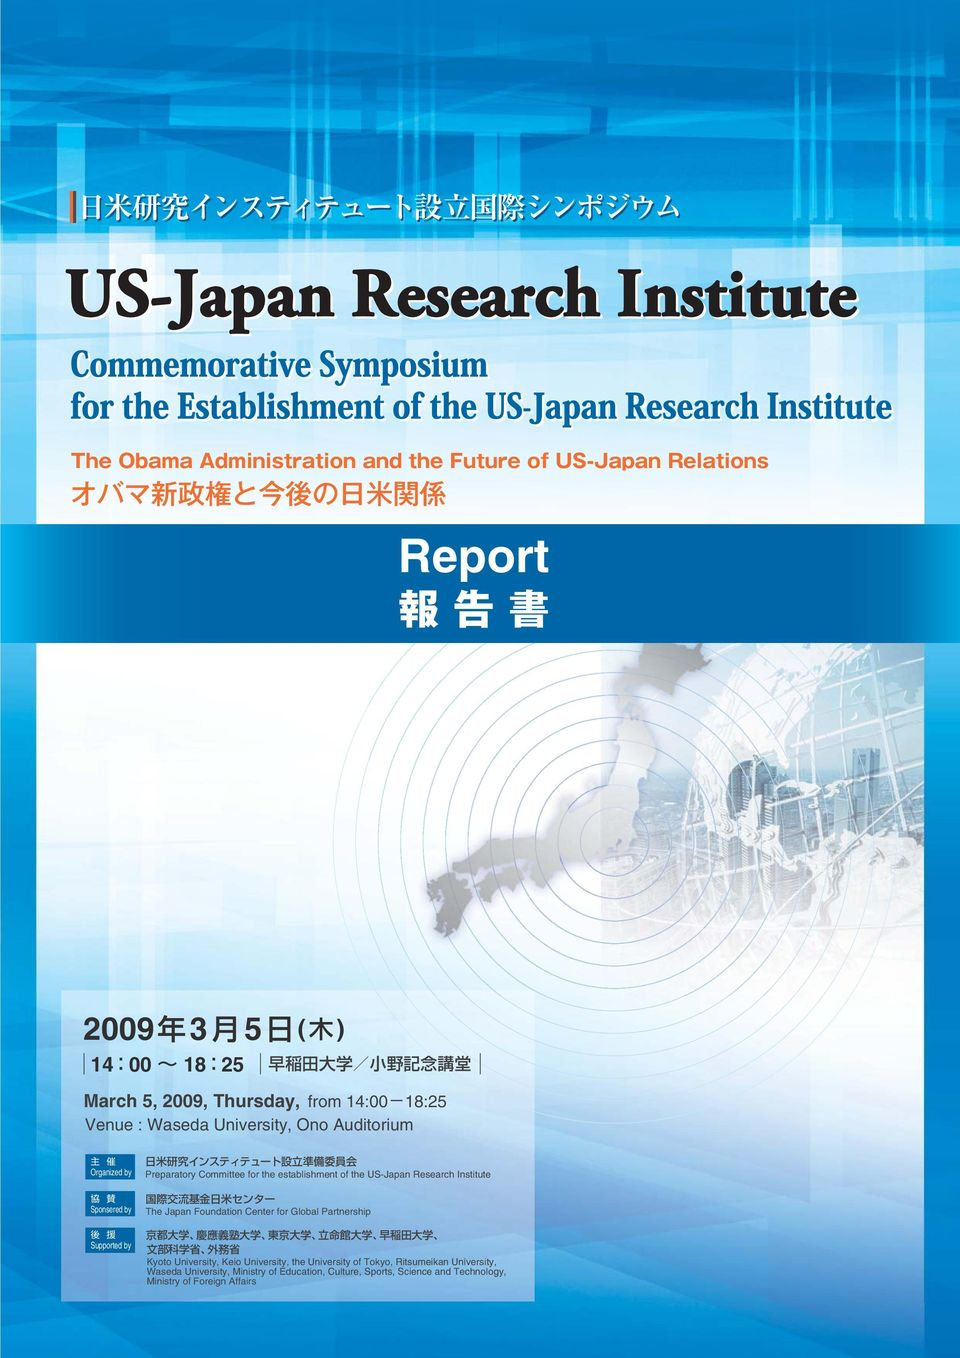 Research Institute The Japan Foundation Center for Global Partnership Kyoto University, Keio University, the University of